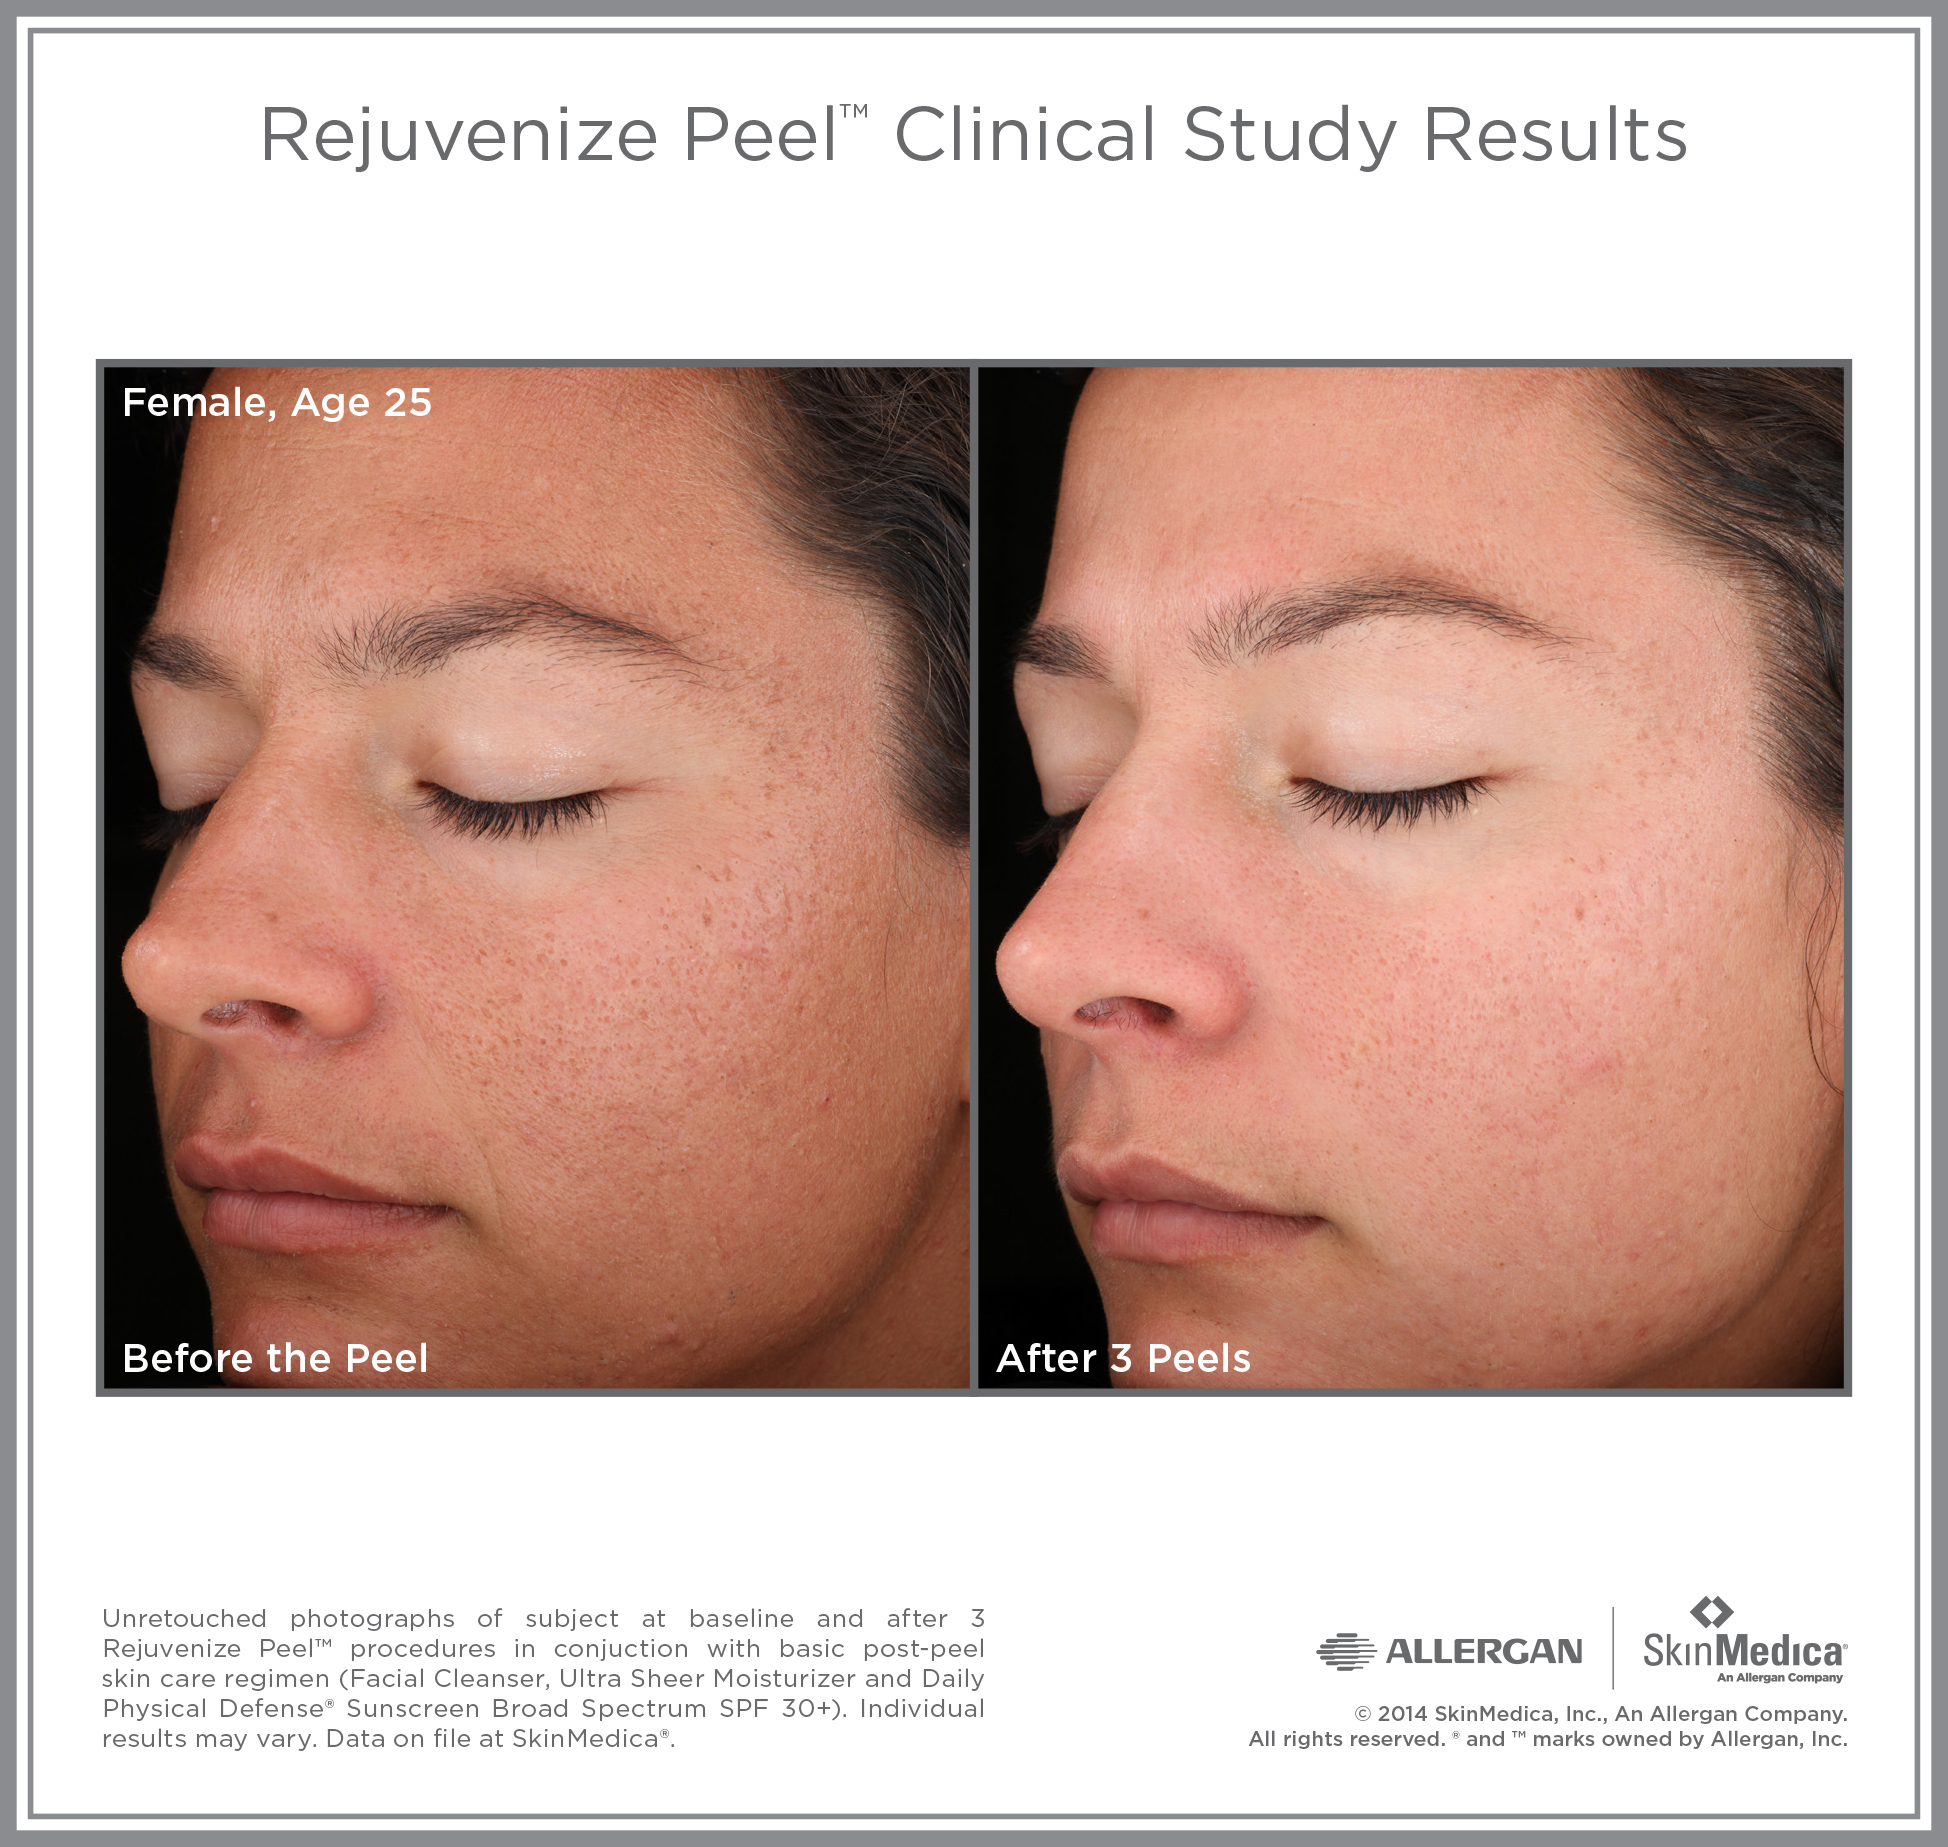 Rejuvenize Peel before and after